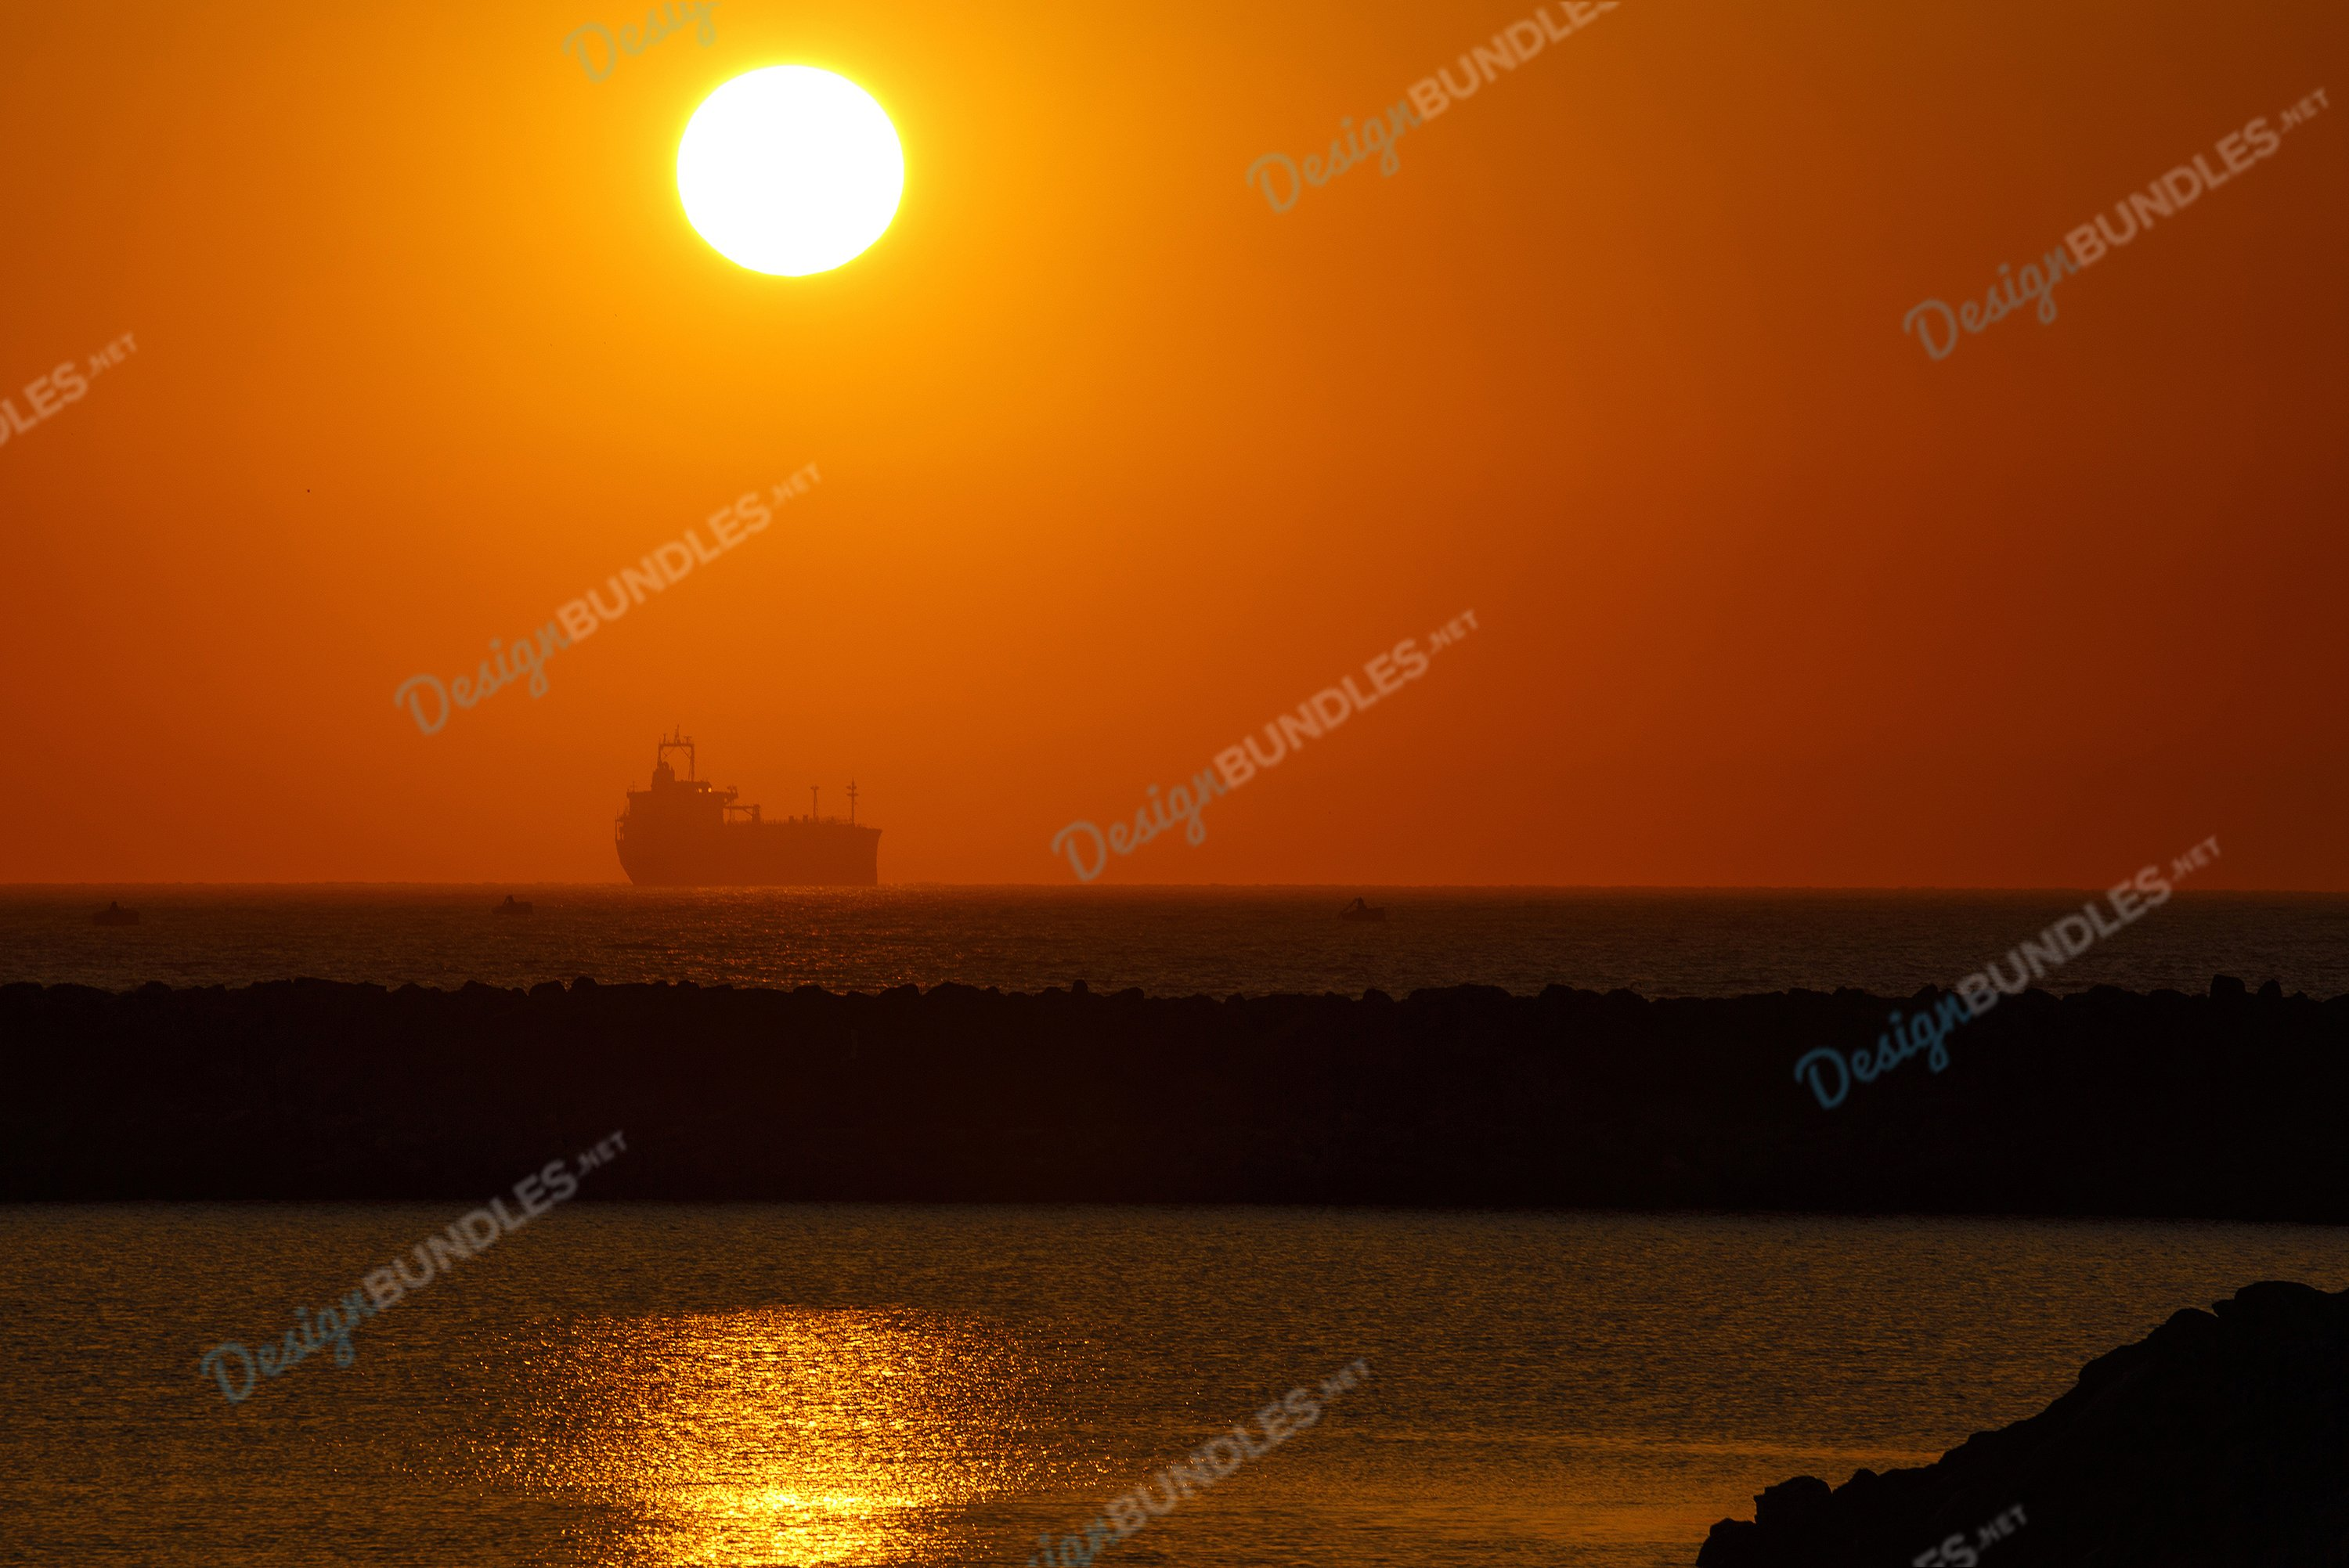 Ships And Sunset example image 1